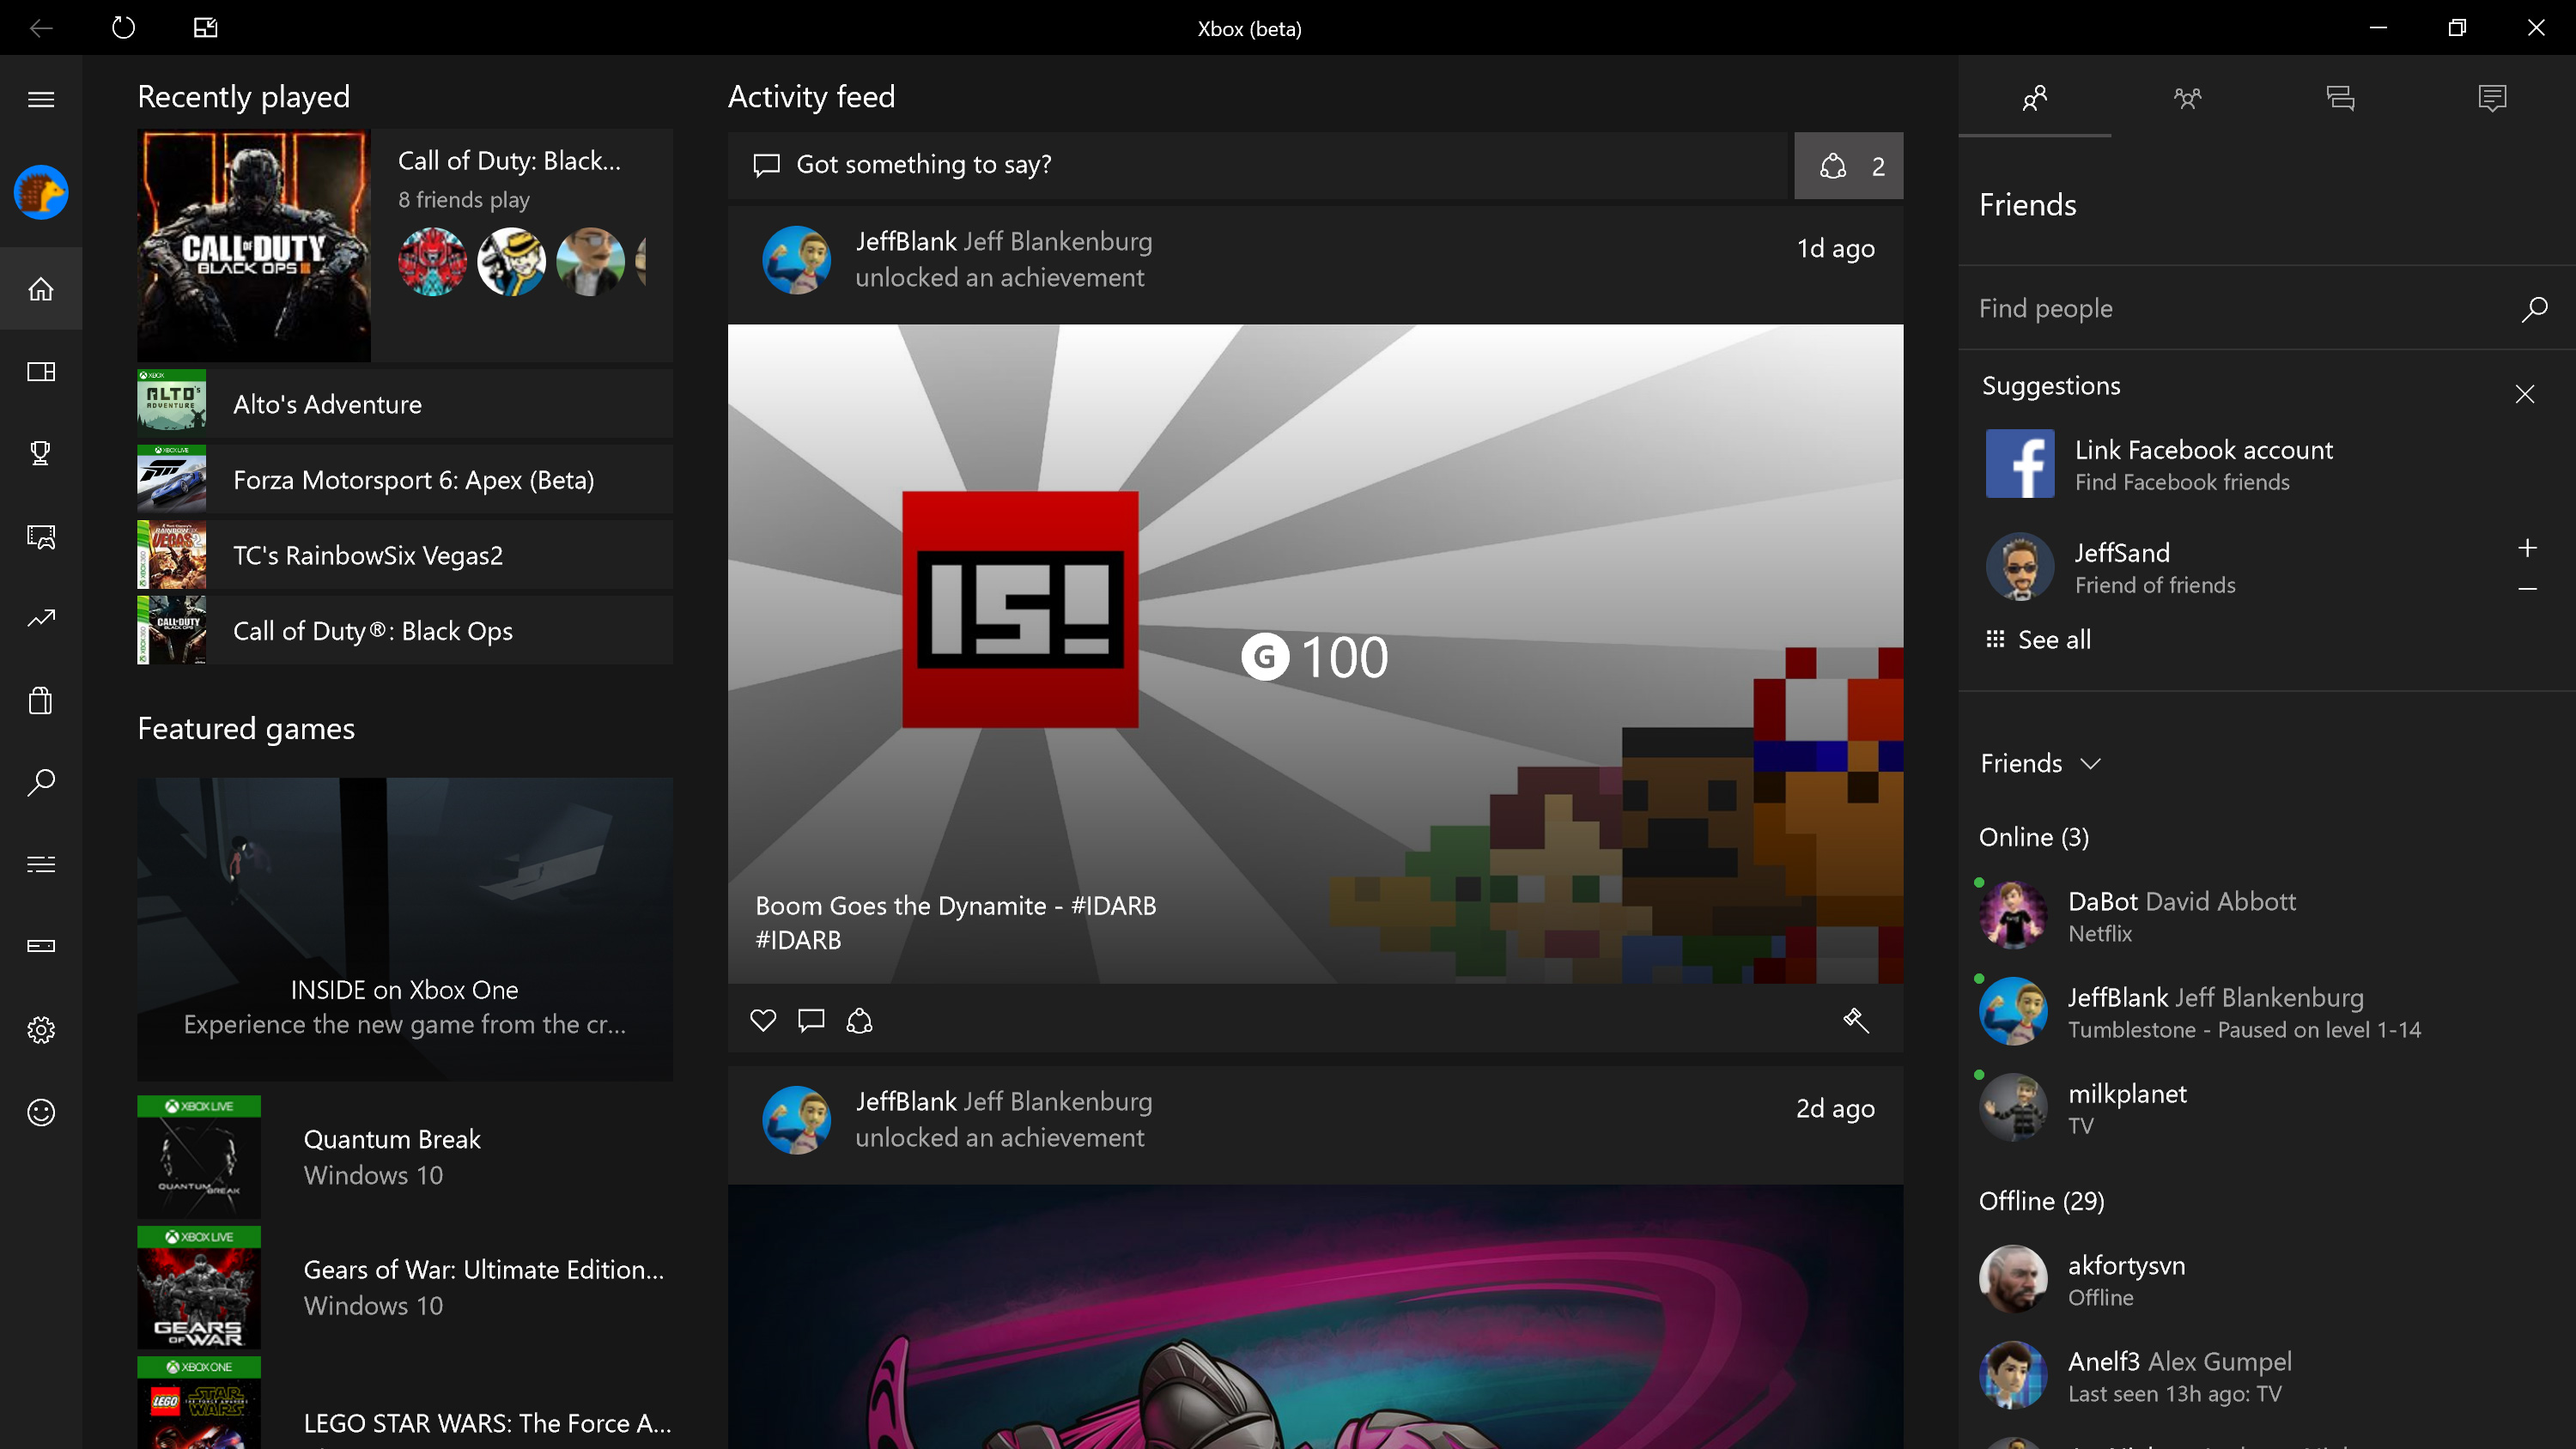 Xbox (Beta) App for Windows 10 Gets Twitter Sharing, More in New